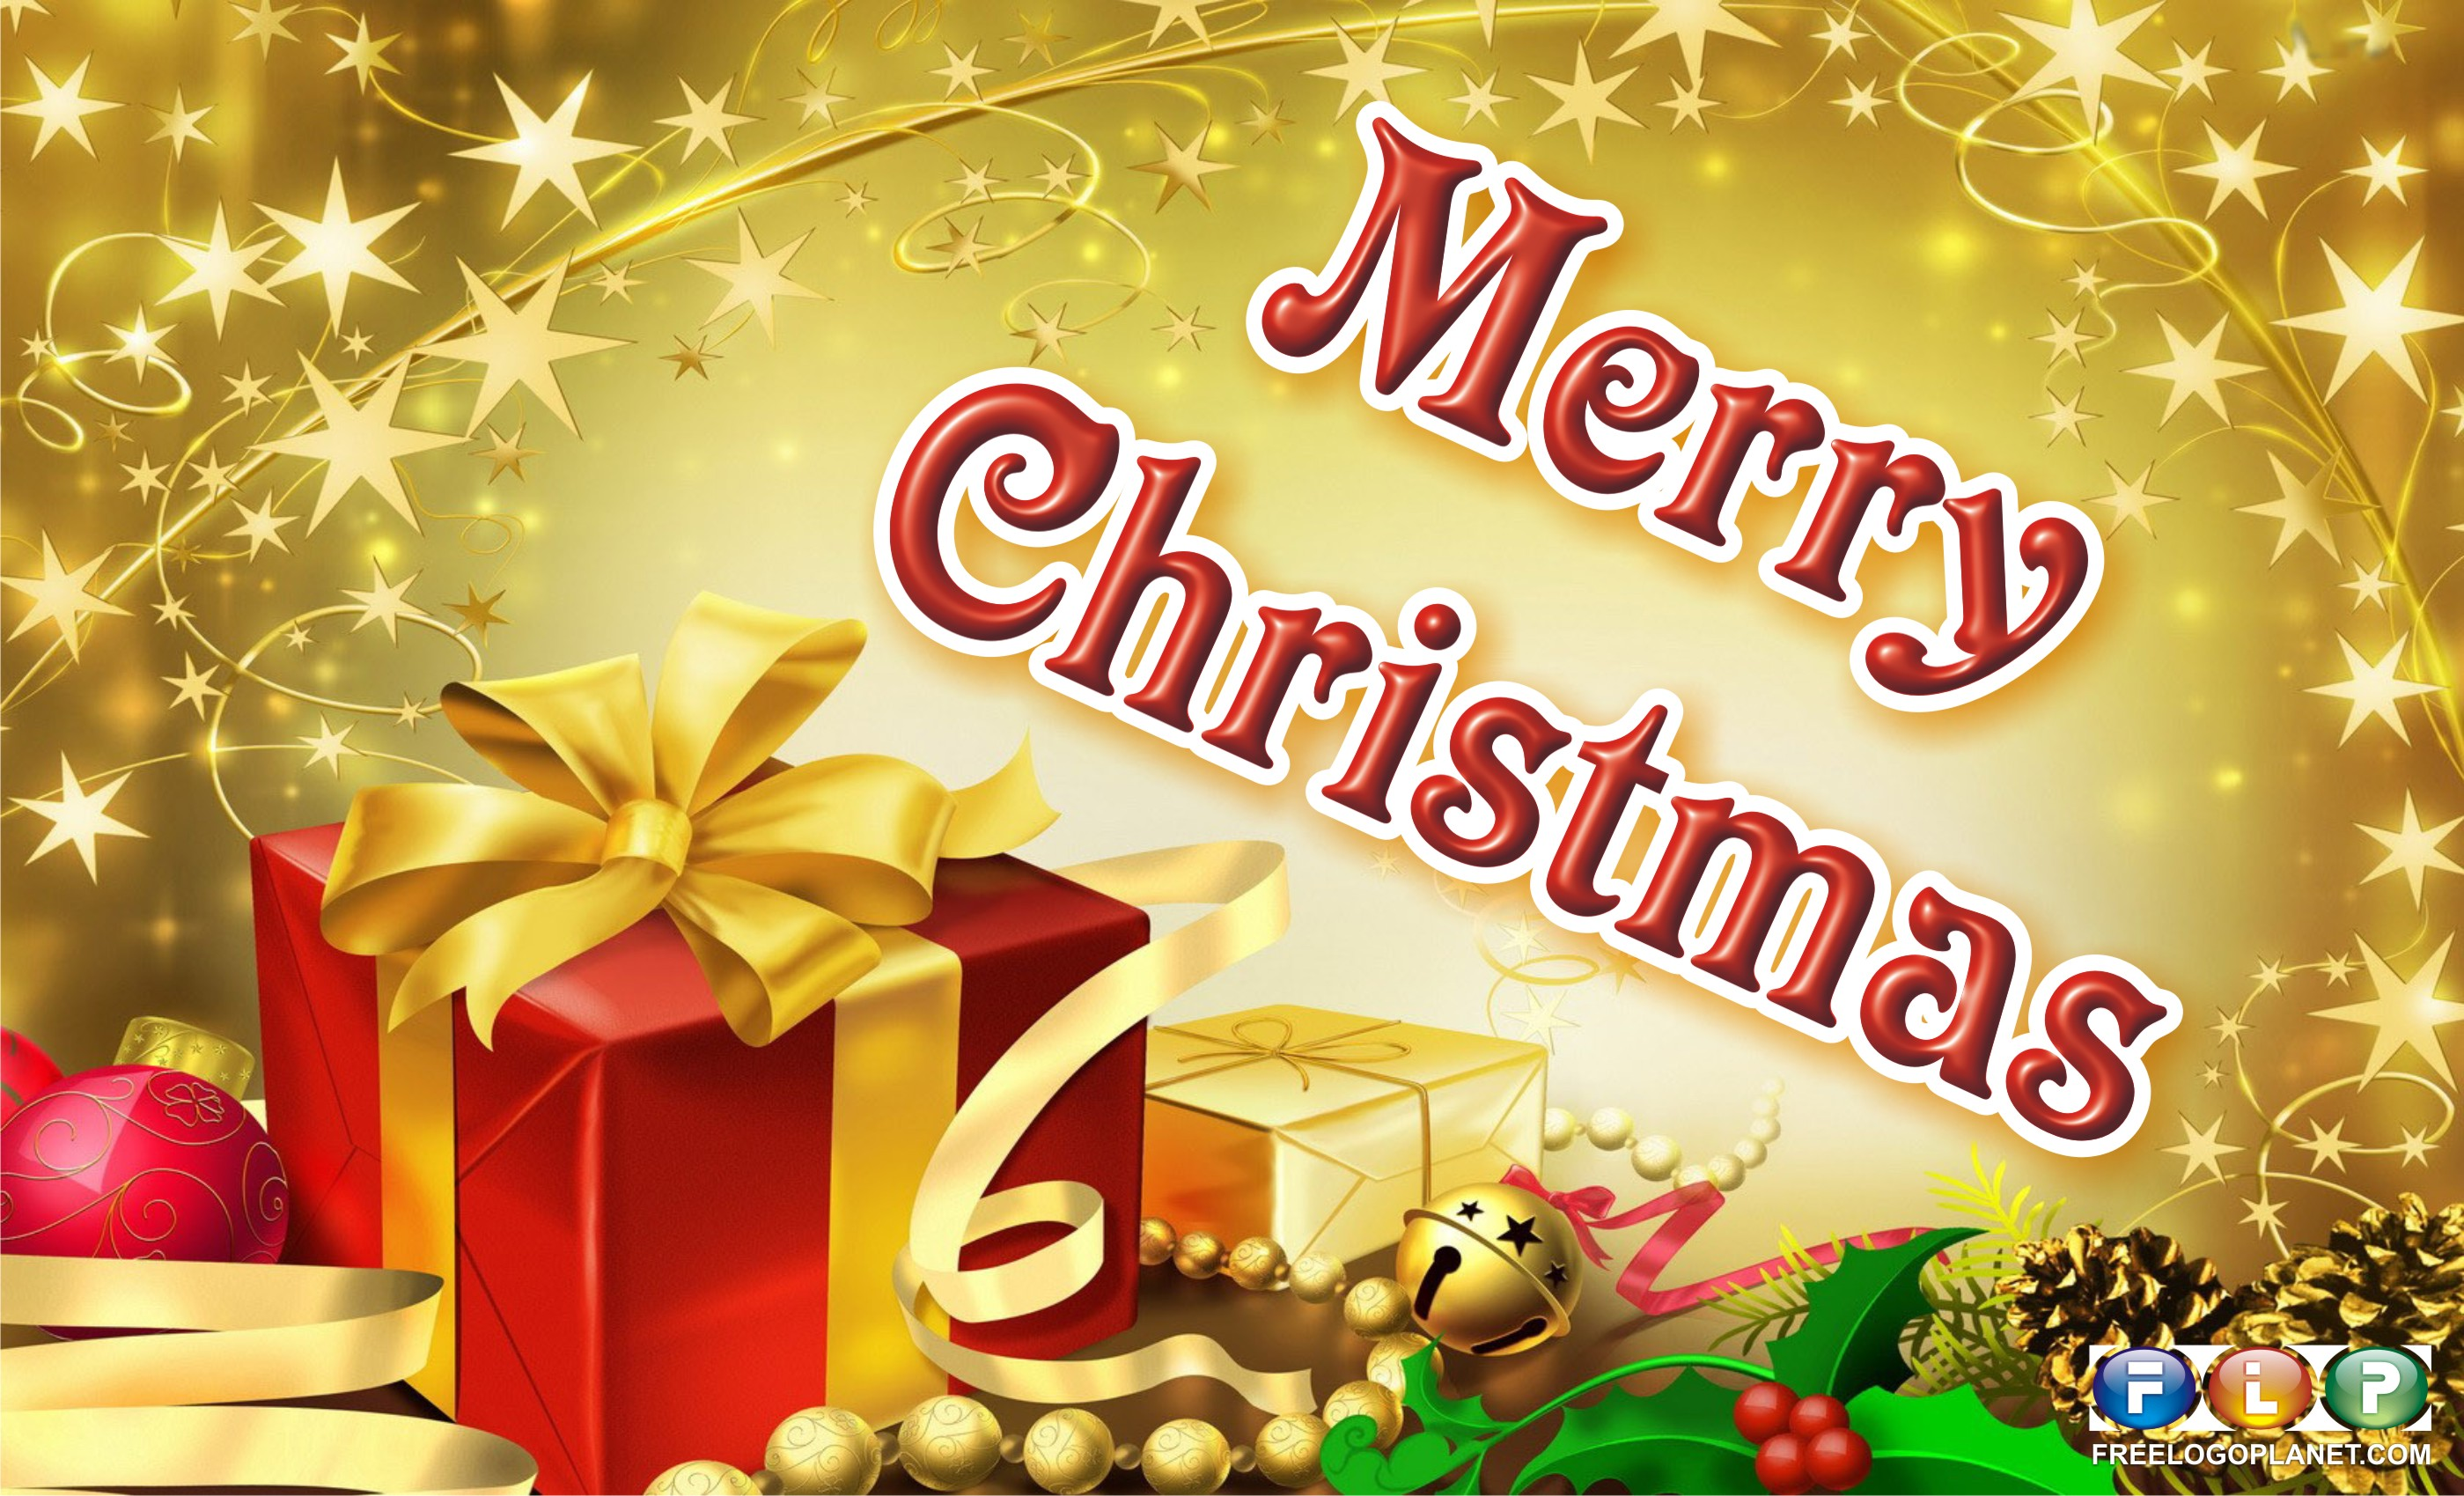 Merry Christmas from all of us at GHANAsoccernet.com ...